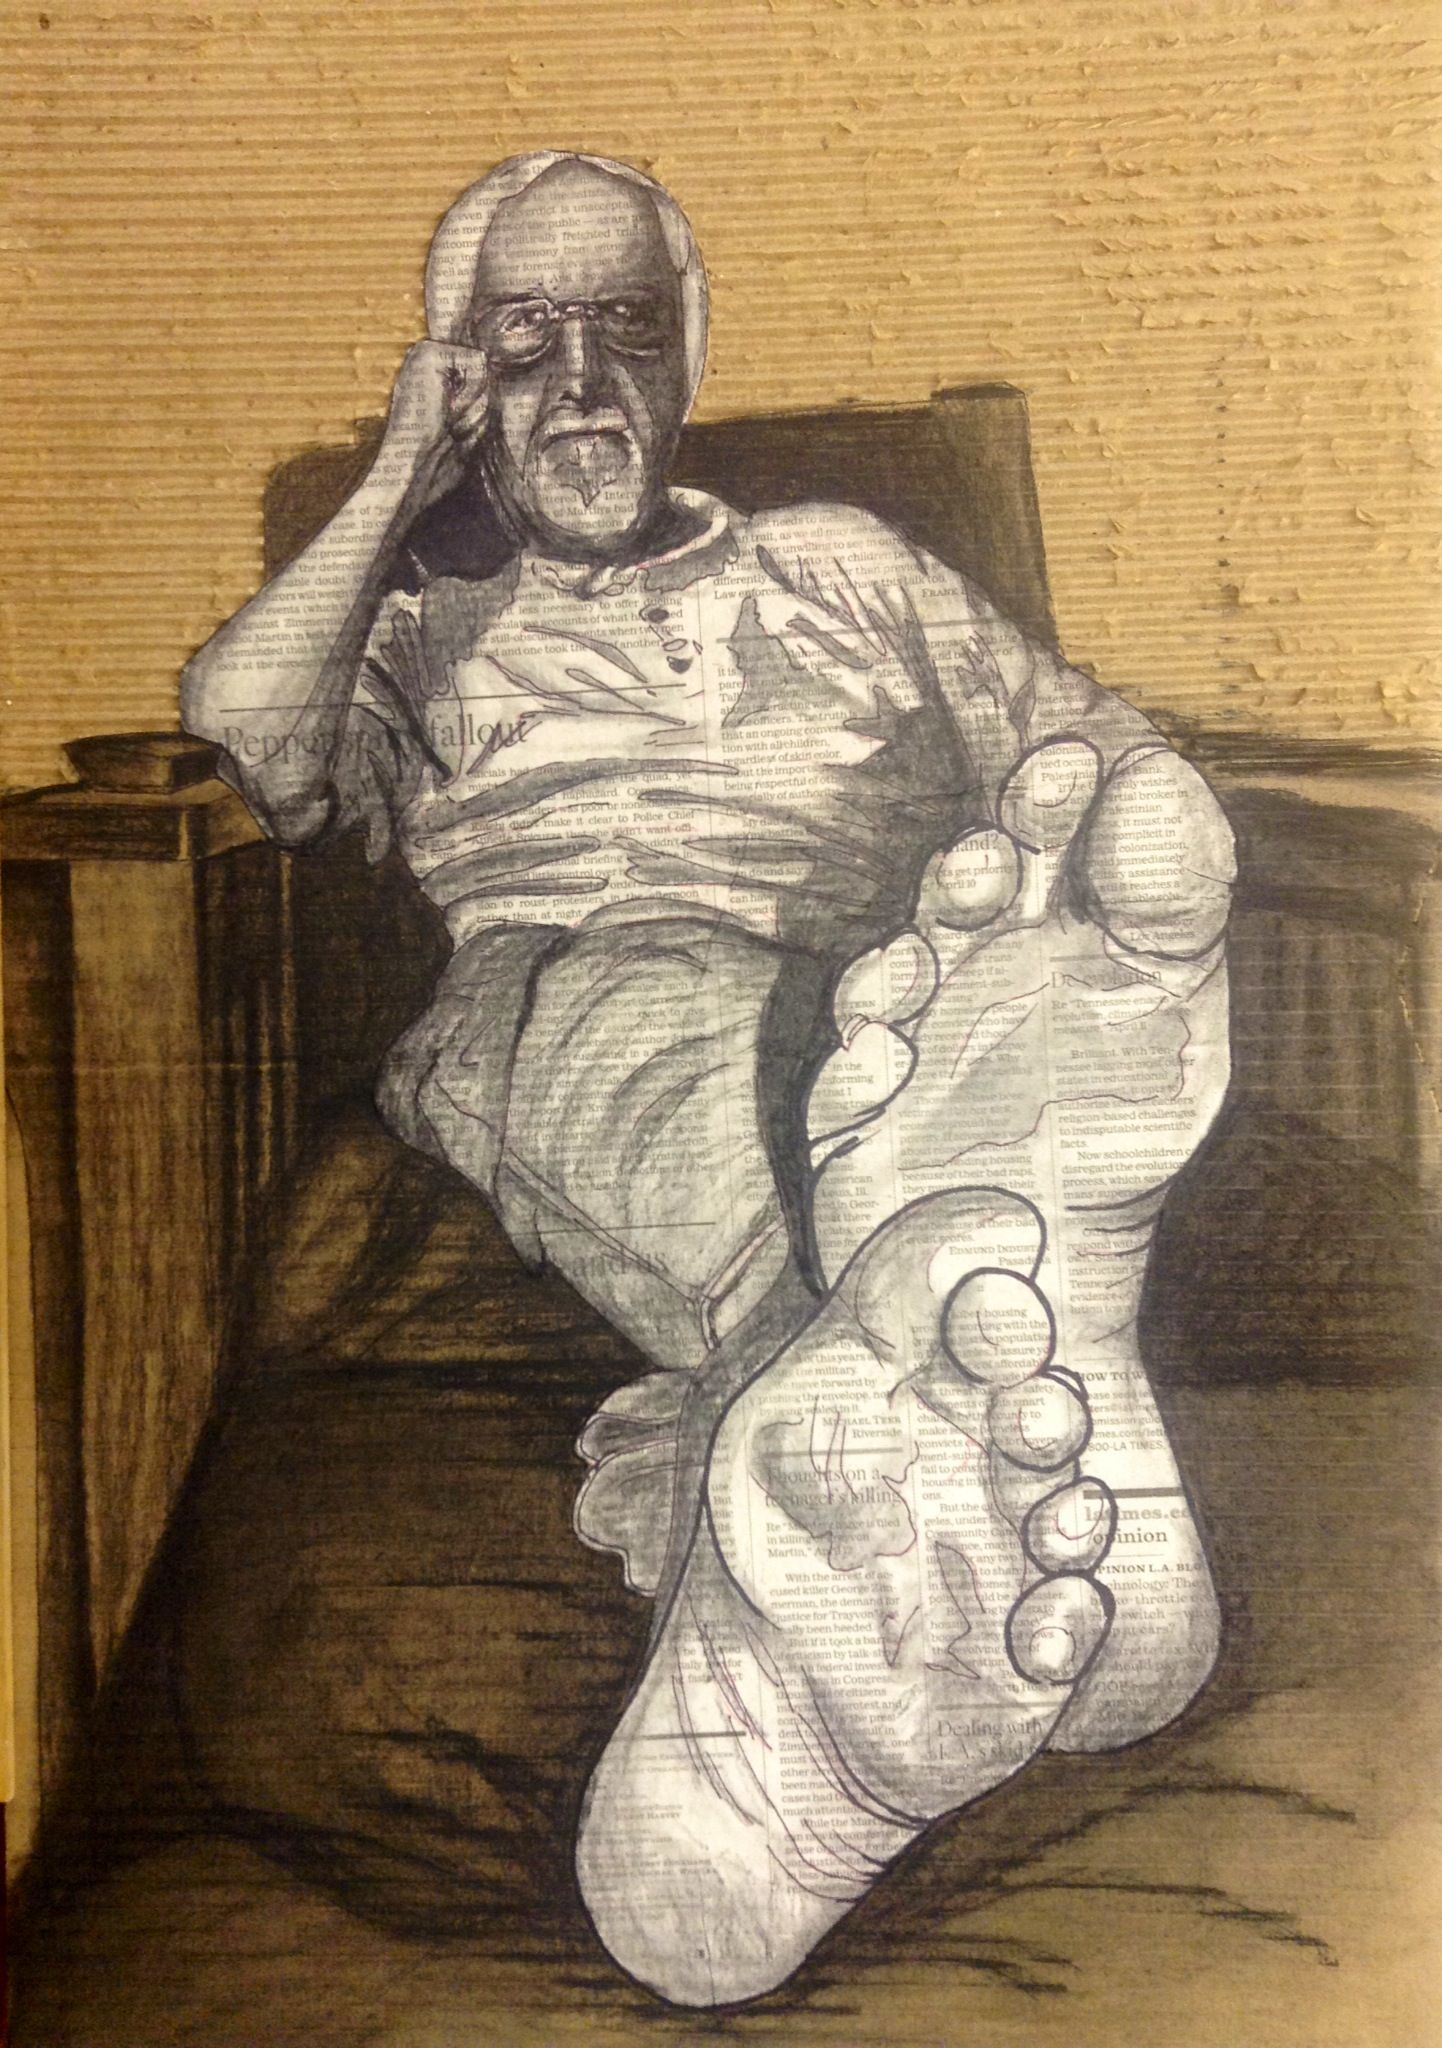 """""""Nelson foreshortened"""" - sharpie & charcoal on newspaper and cardboard - Cindy Brunk"""